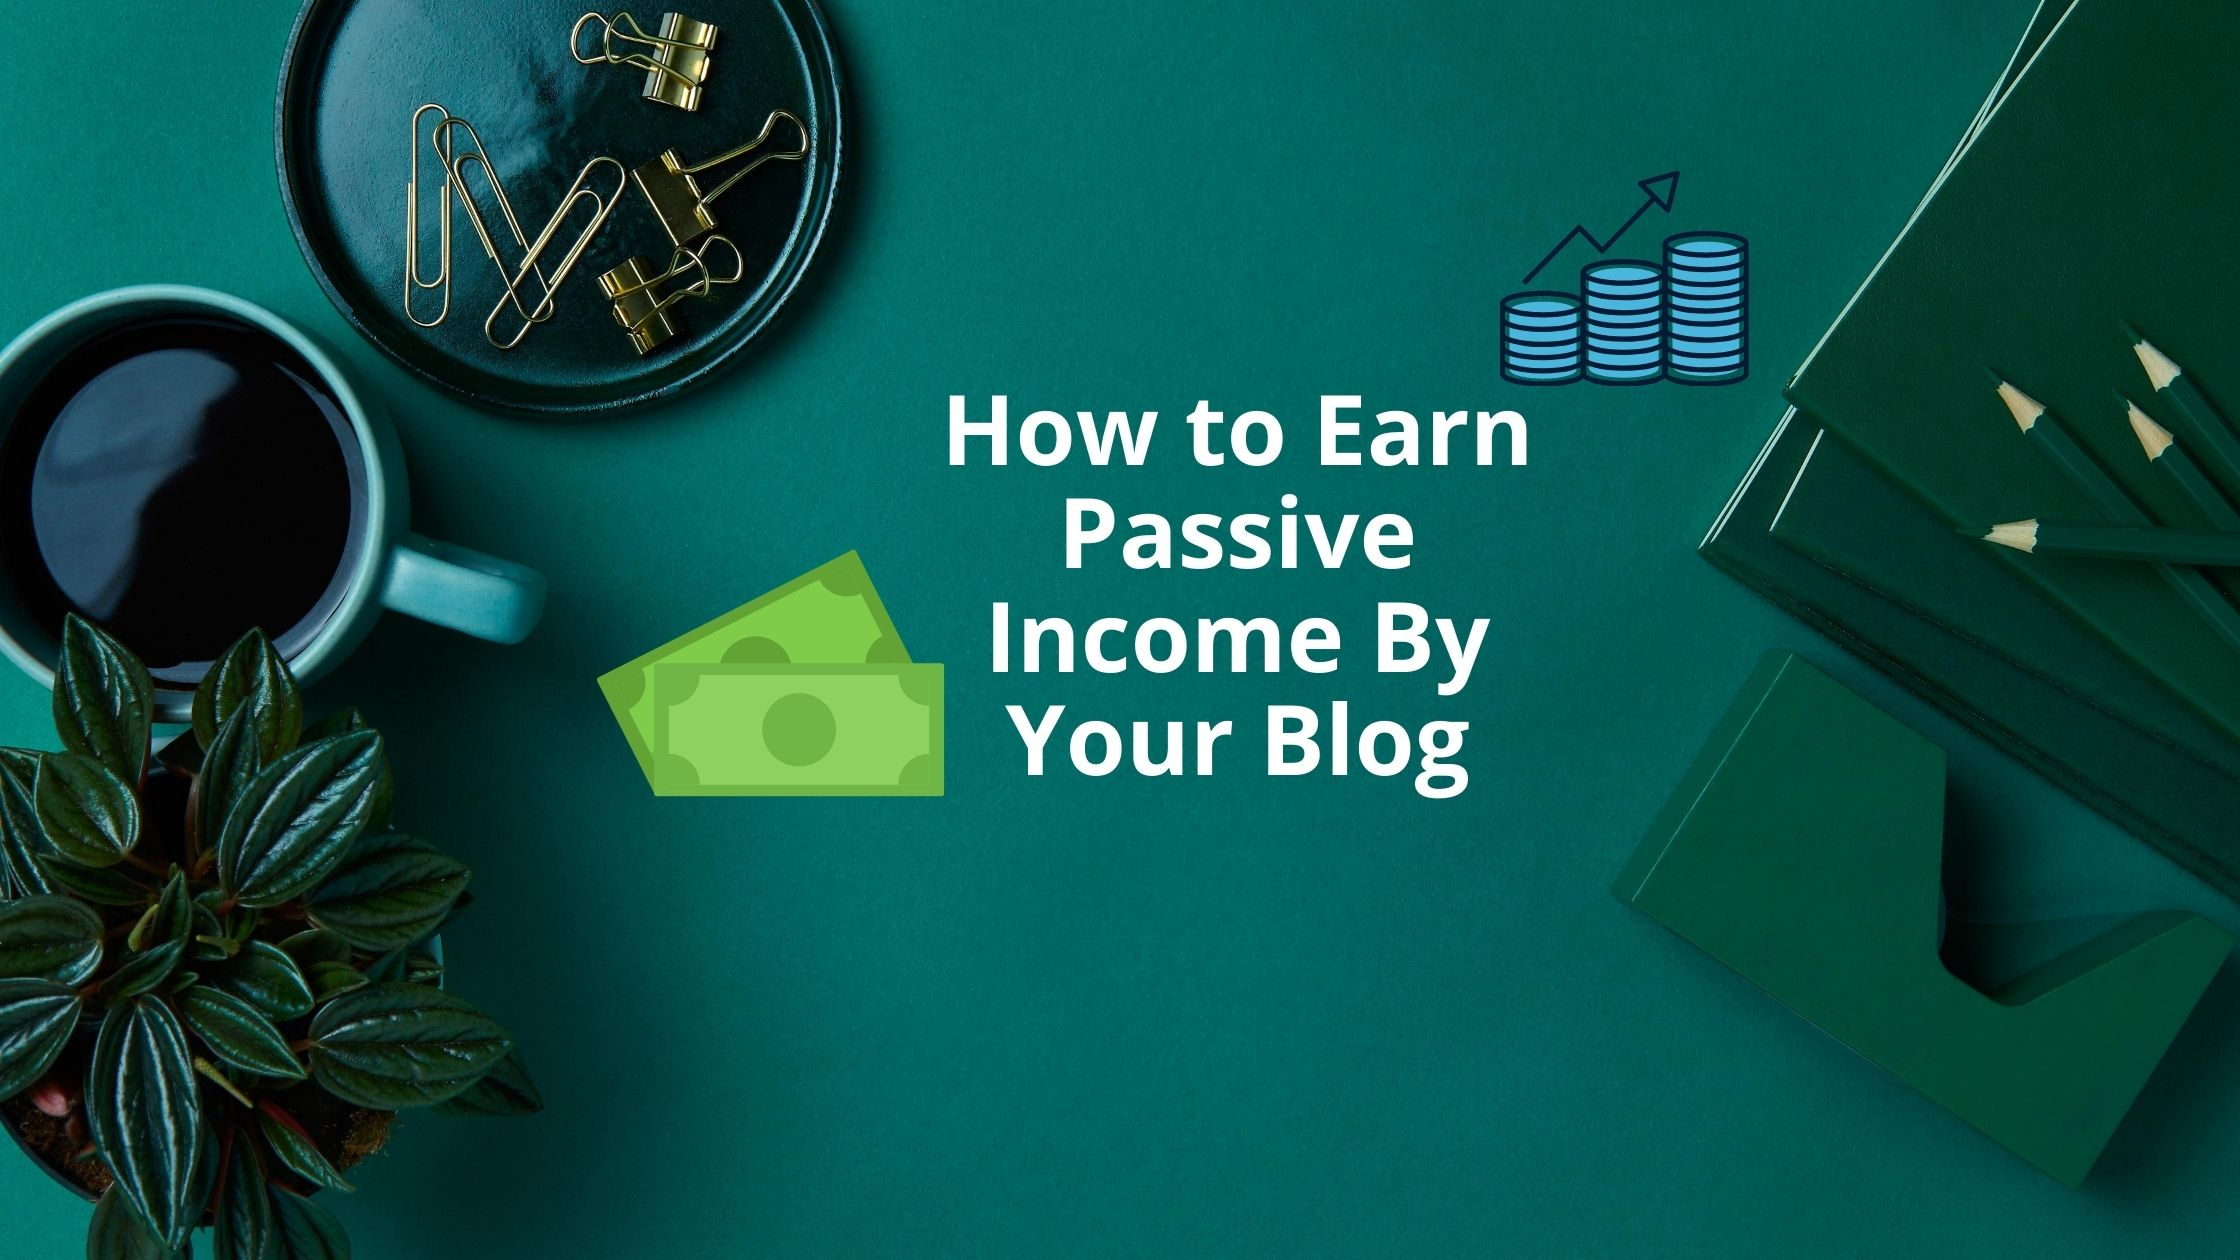 How to Make Money by Your Blog in 2020